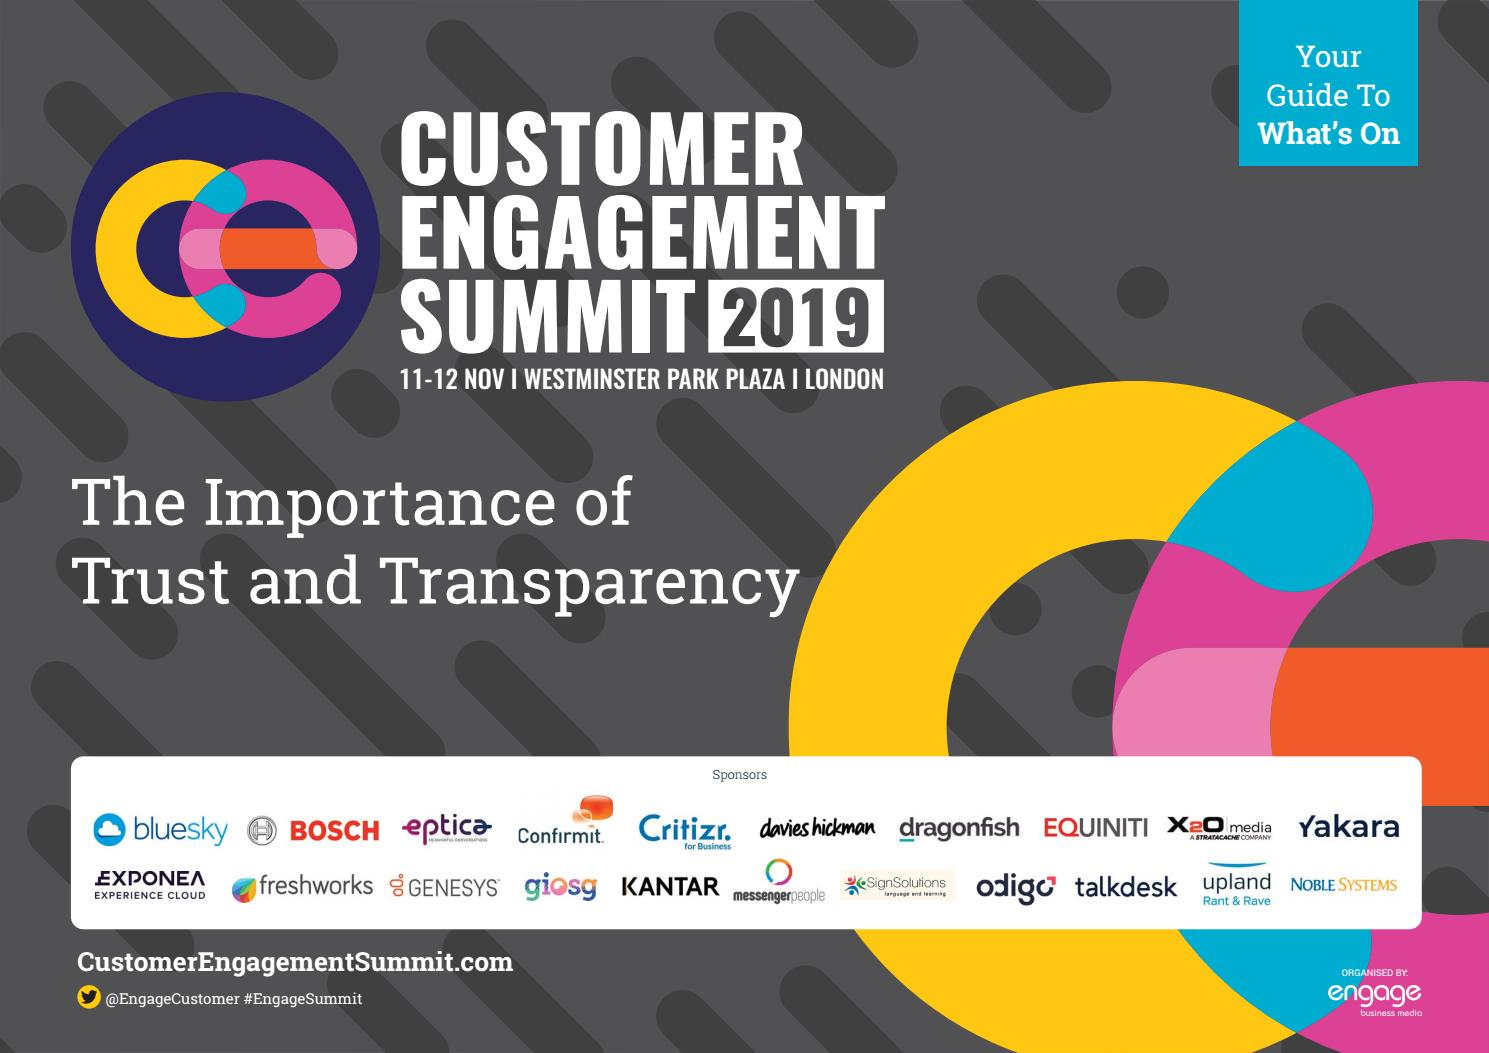 2019 Customer Engagement Summit Preview Guide By Engage